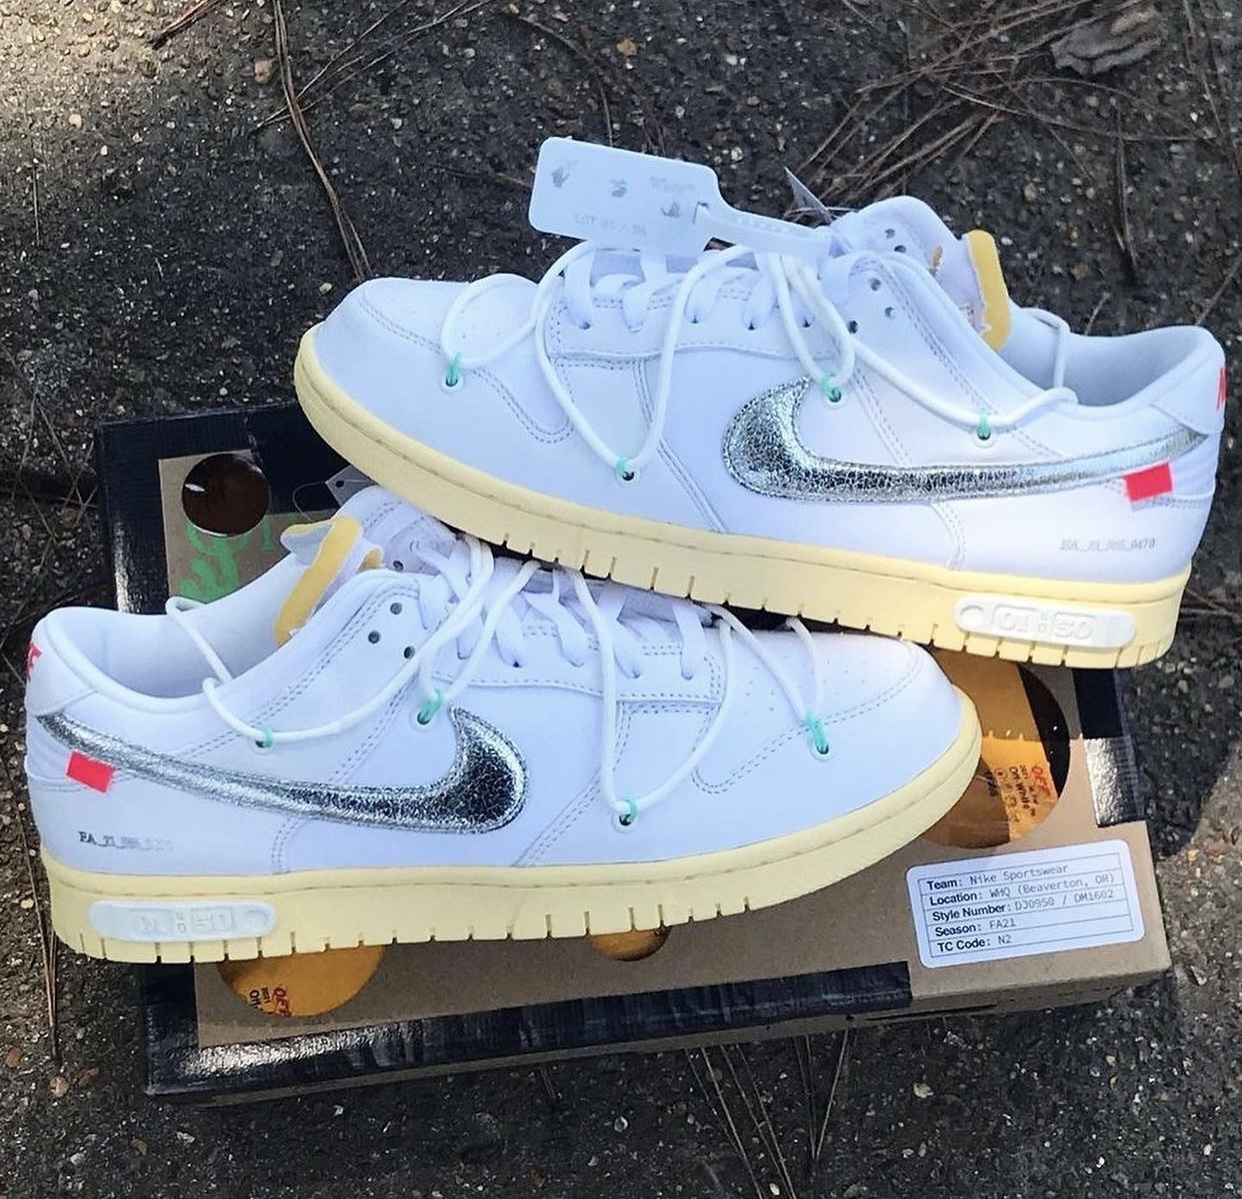 Off-White Nike Dunk Low White Metallic Silver DM1602-127 Release Date Release Date